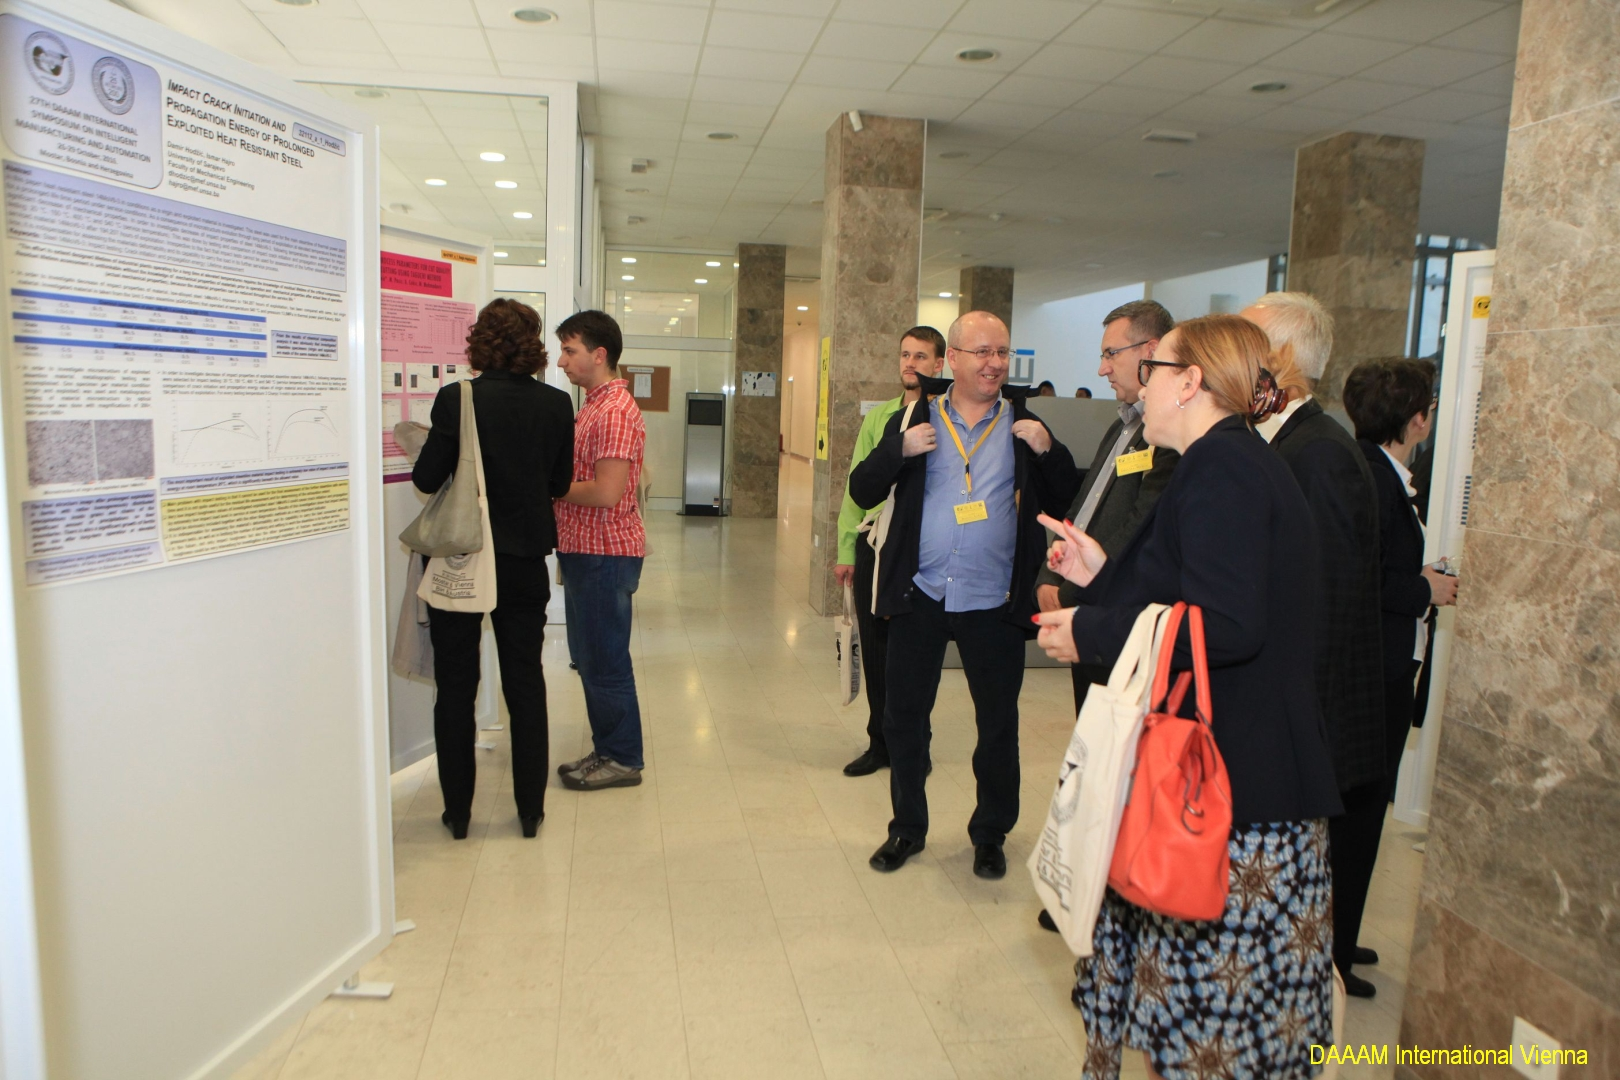 DAAAM_2016_Mostar_07_Posters_and_Presentations_Sessions_039